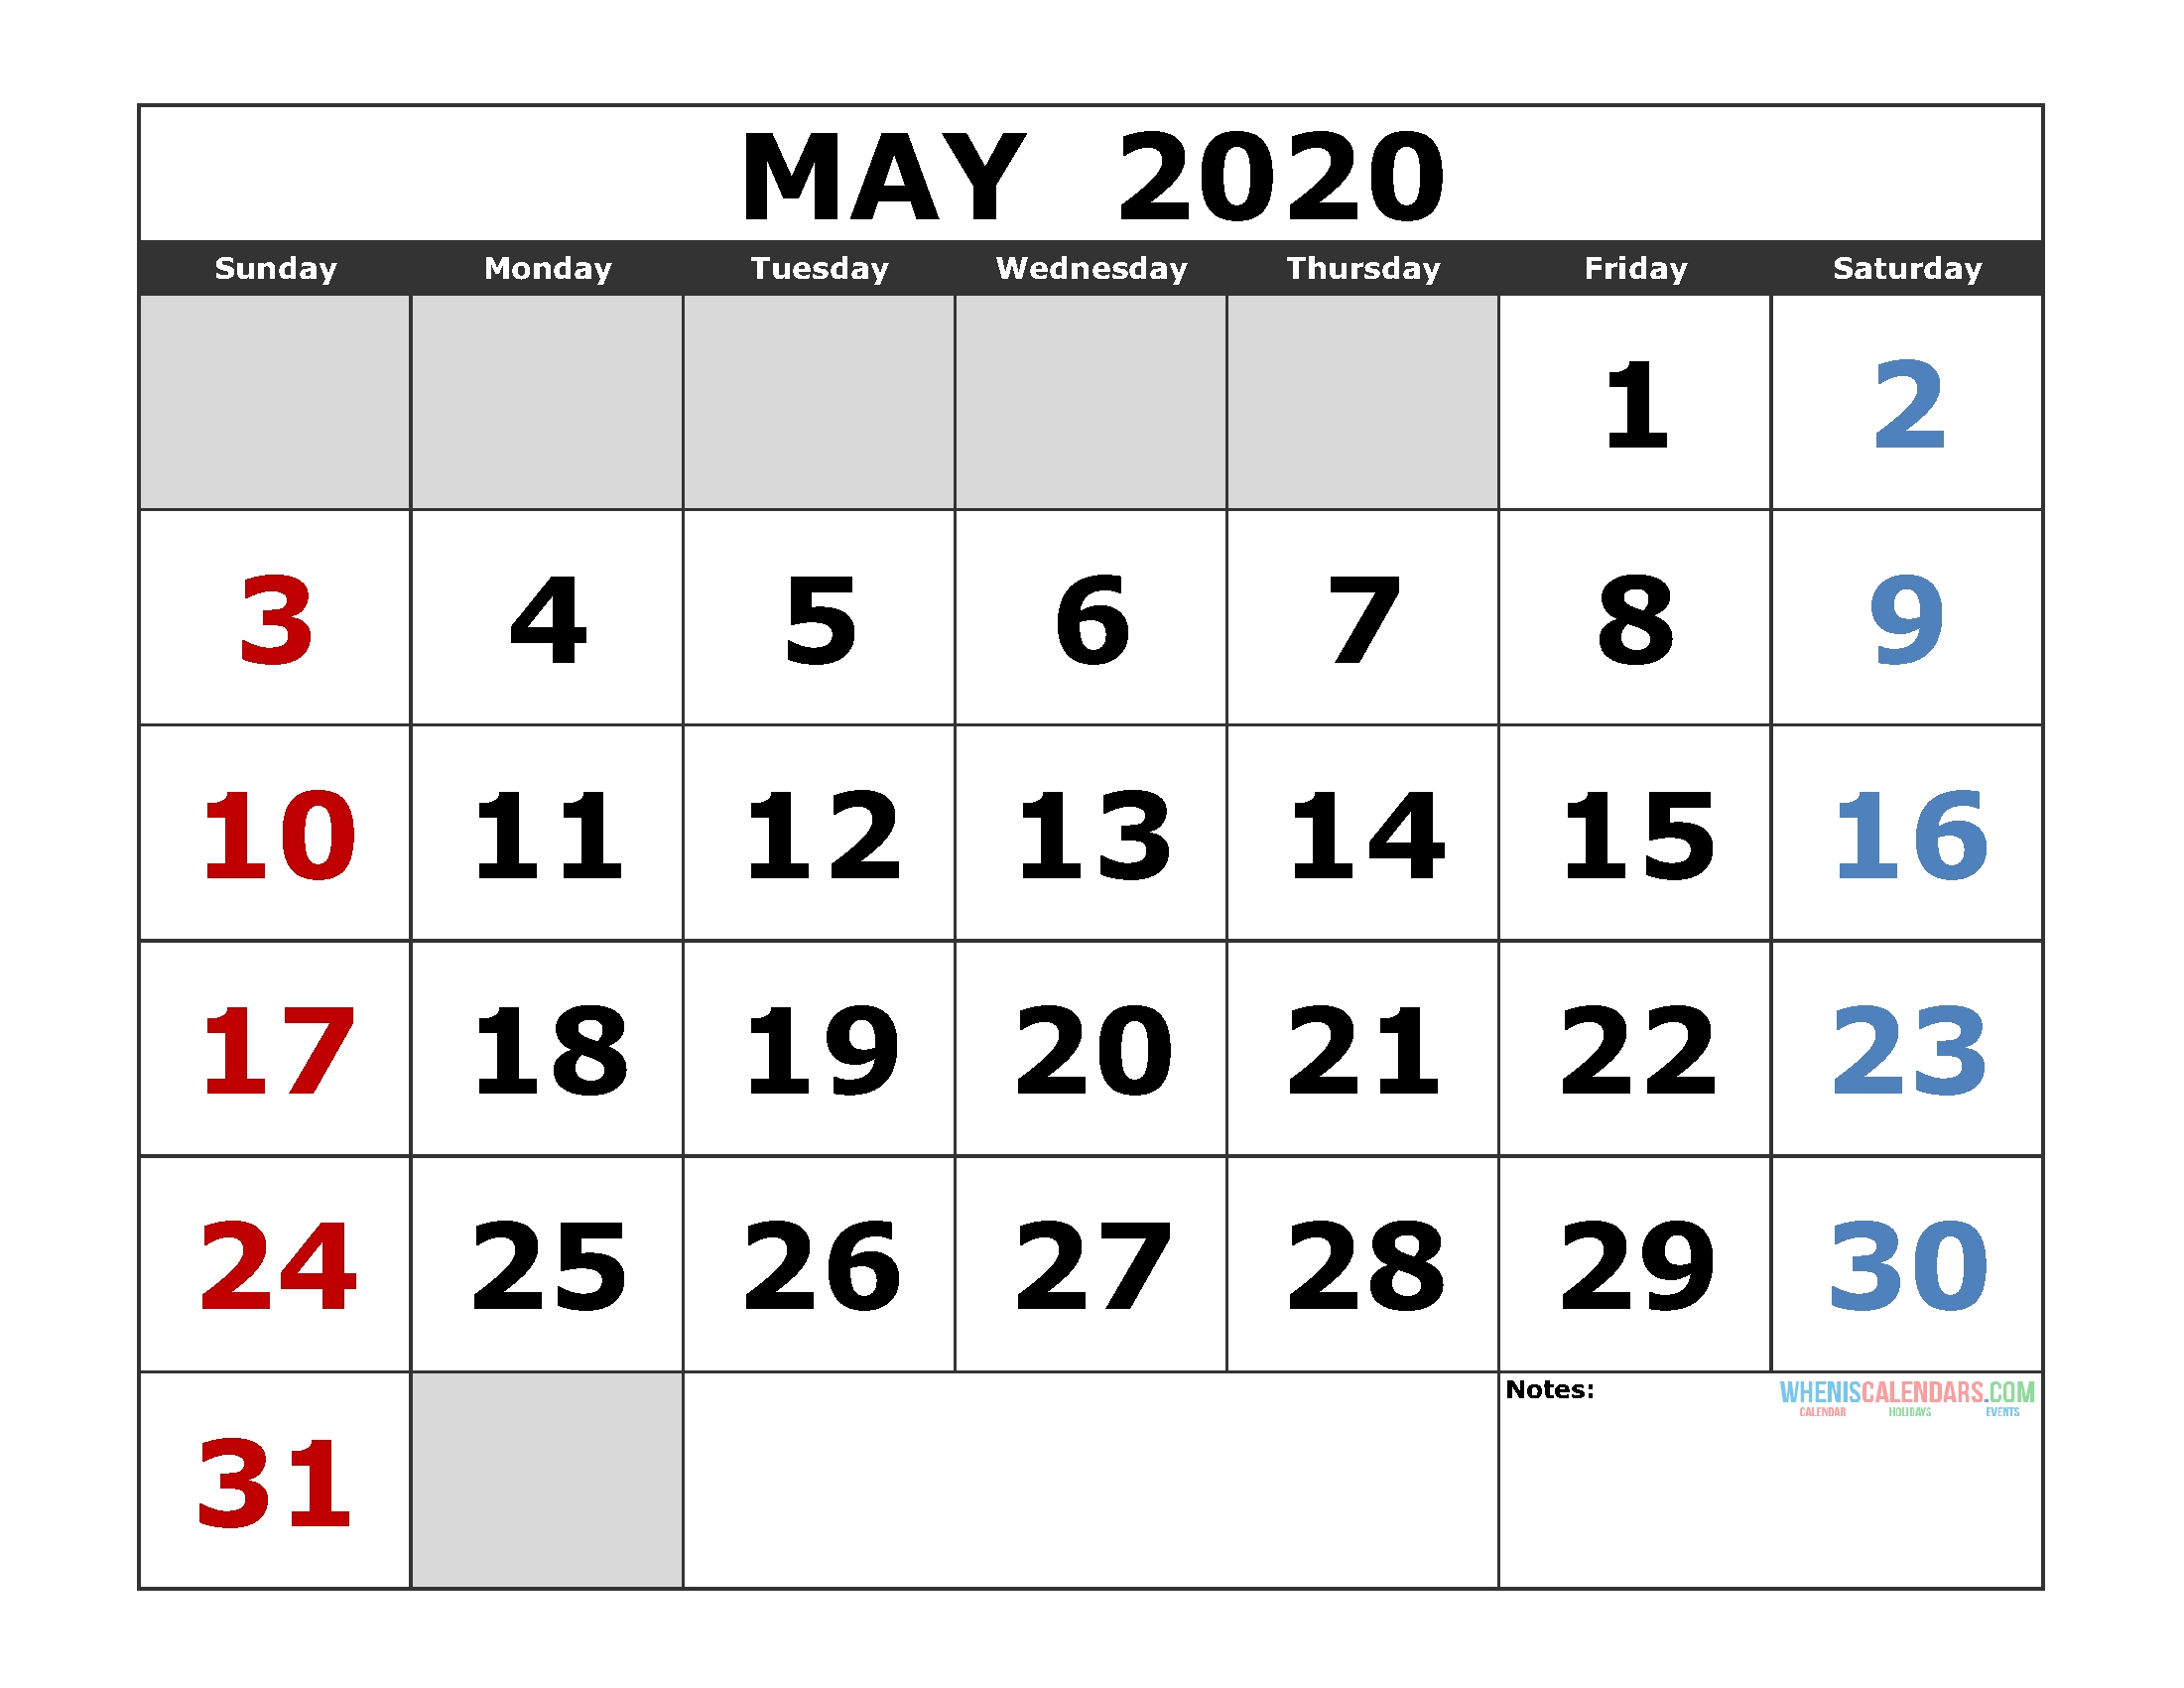 May 2020 Printable Calendar Template Excel, Pdf, Image [Us